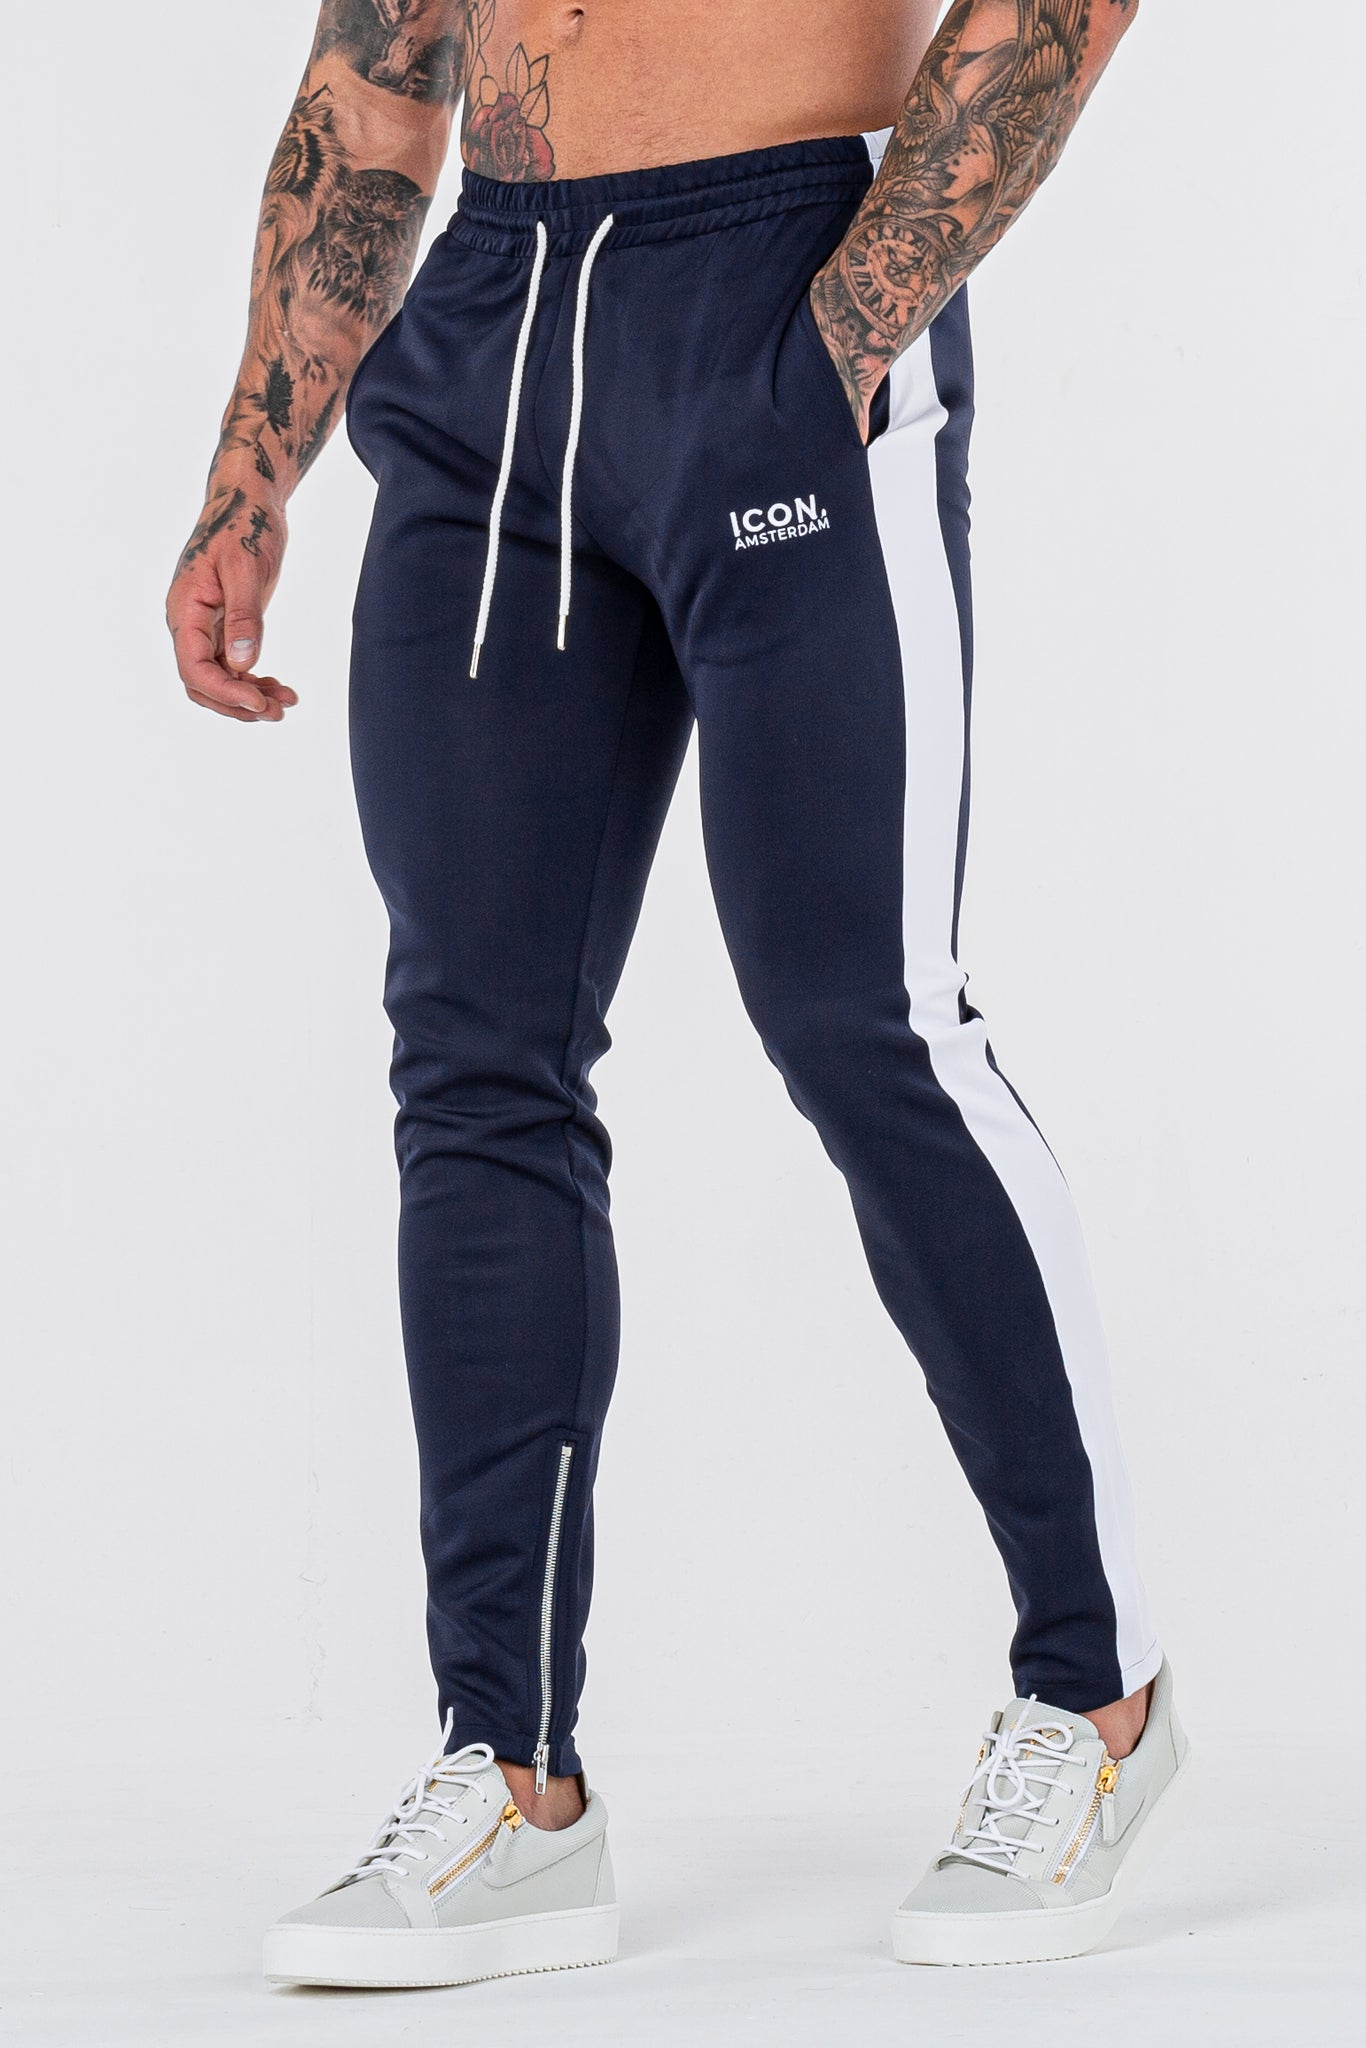 THE ICONIC TRACK PANTS - DARK BLUE - ICON. AMSTERDAM